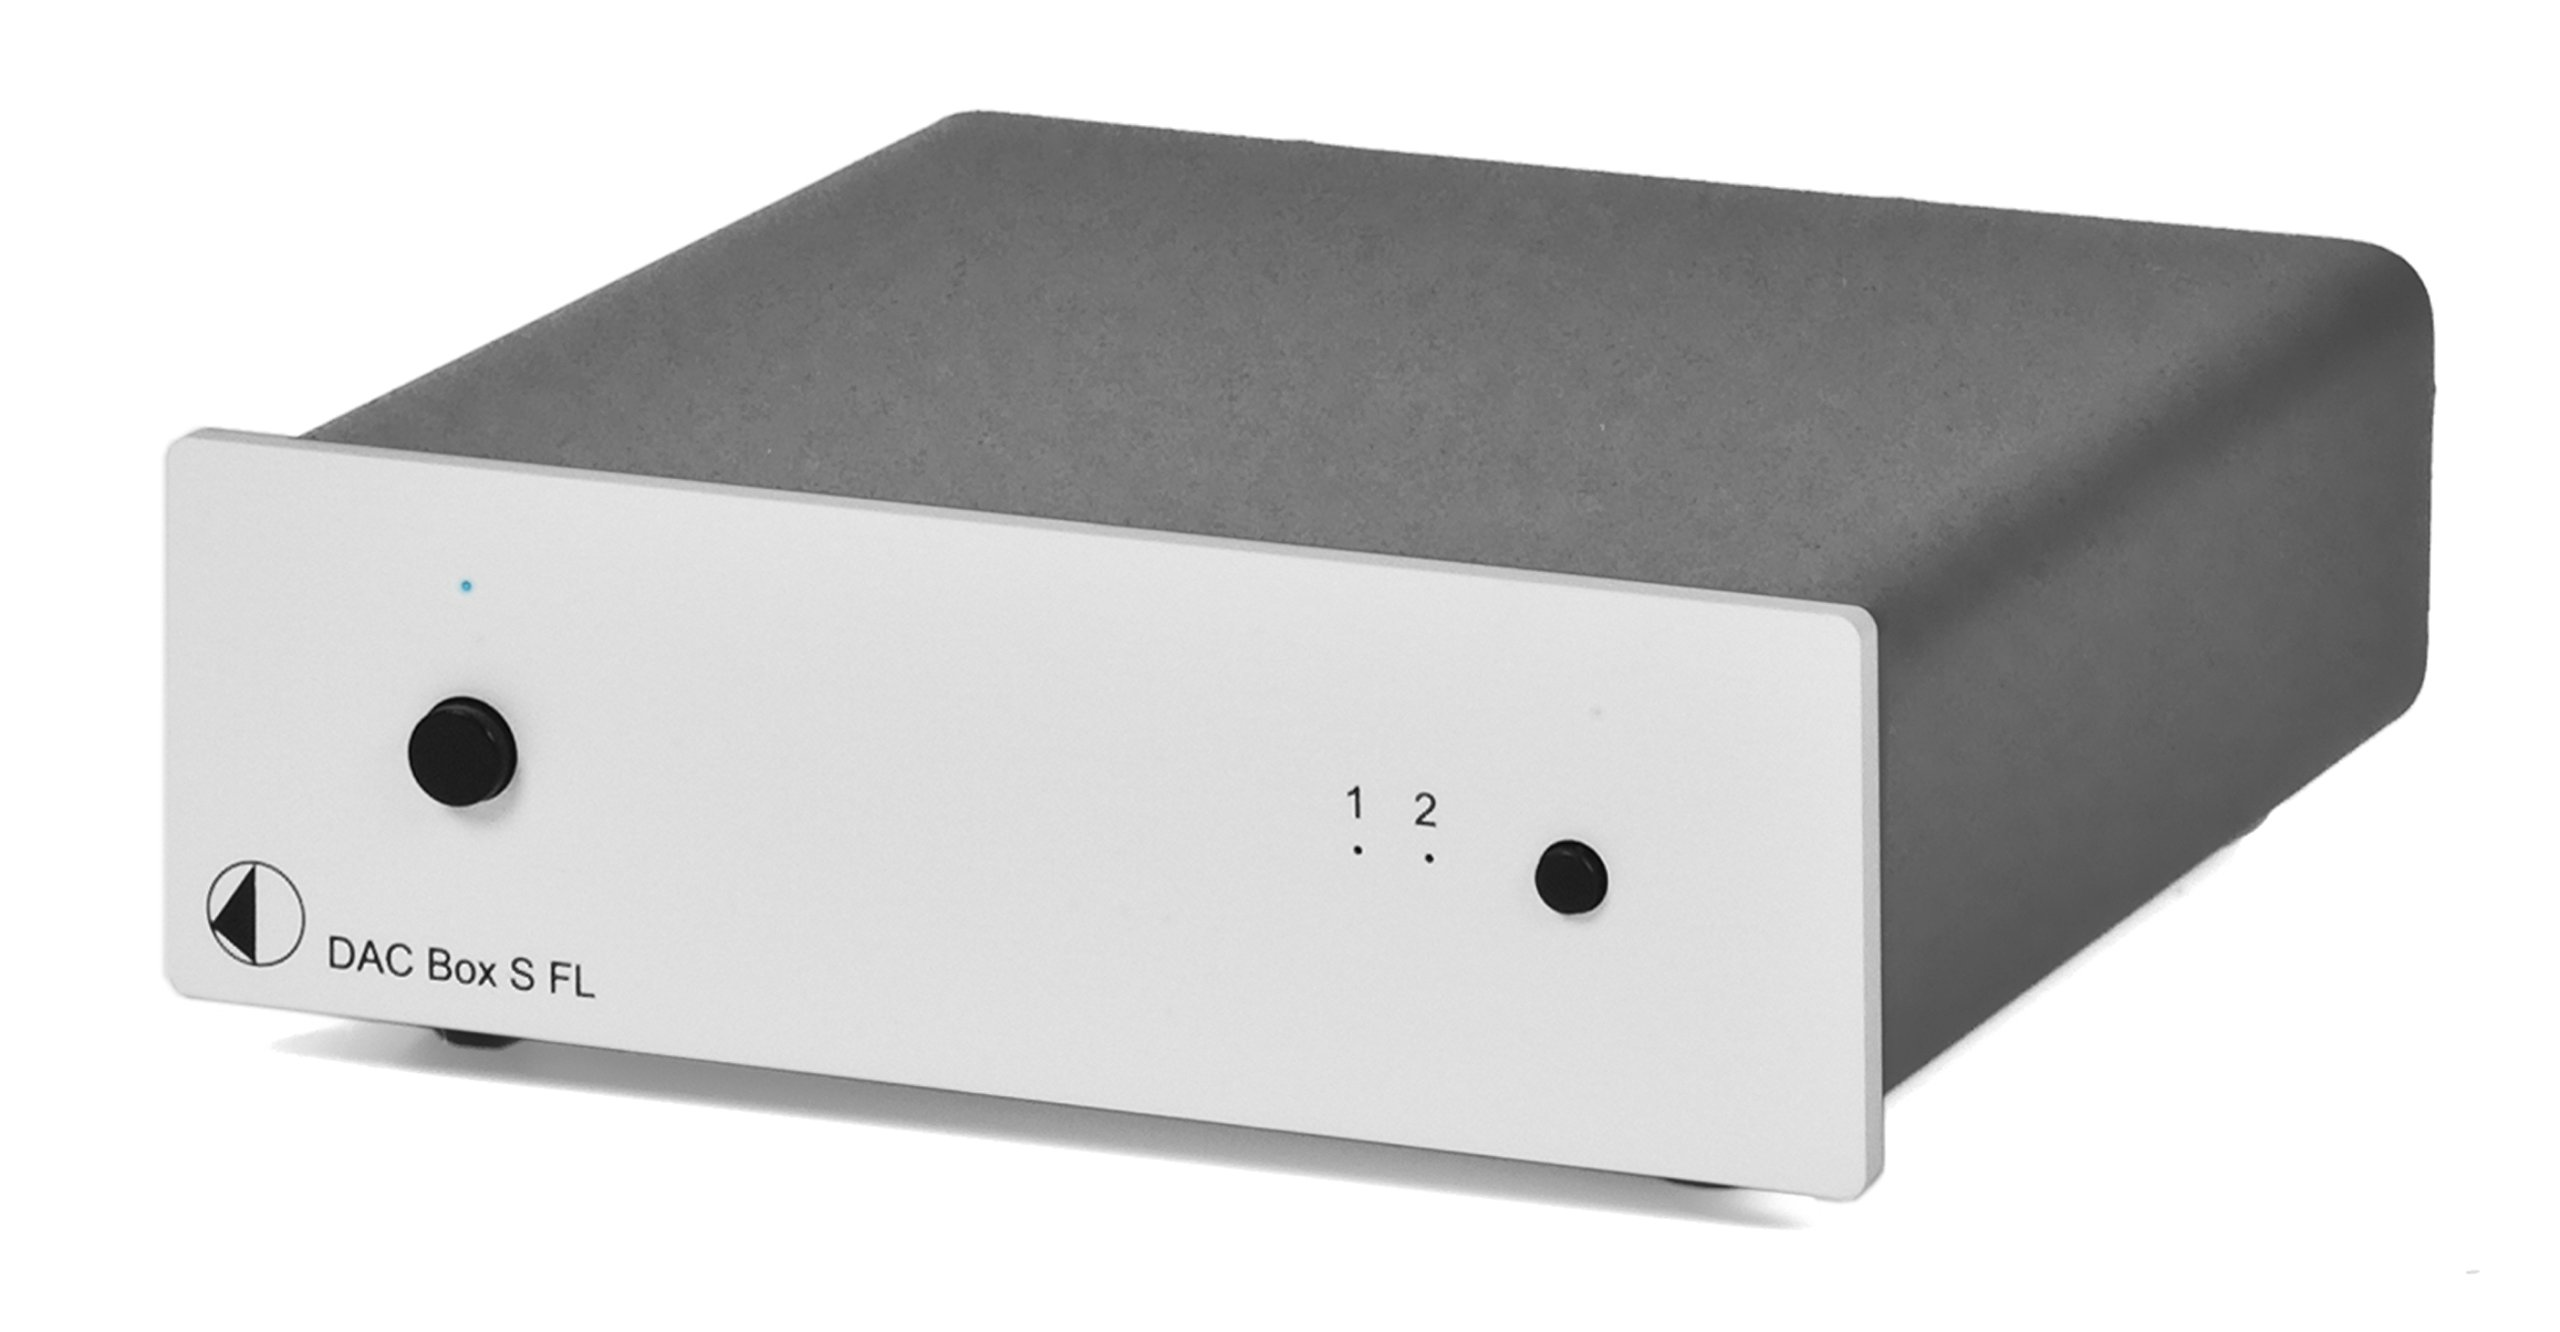 Pro-Ject DAC Box S FL (Silver) Digital to Analog Converter, Silver by Pro-Ject